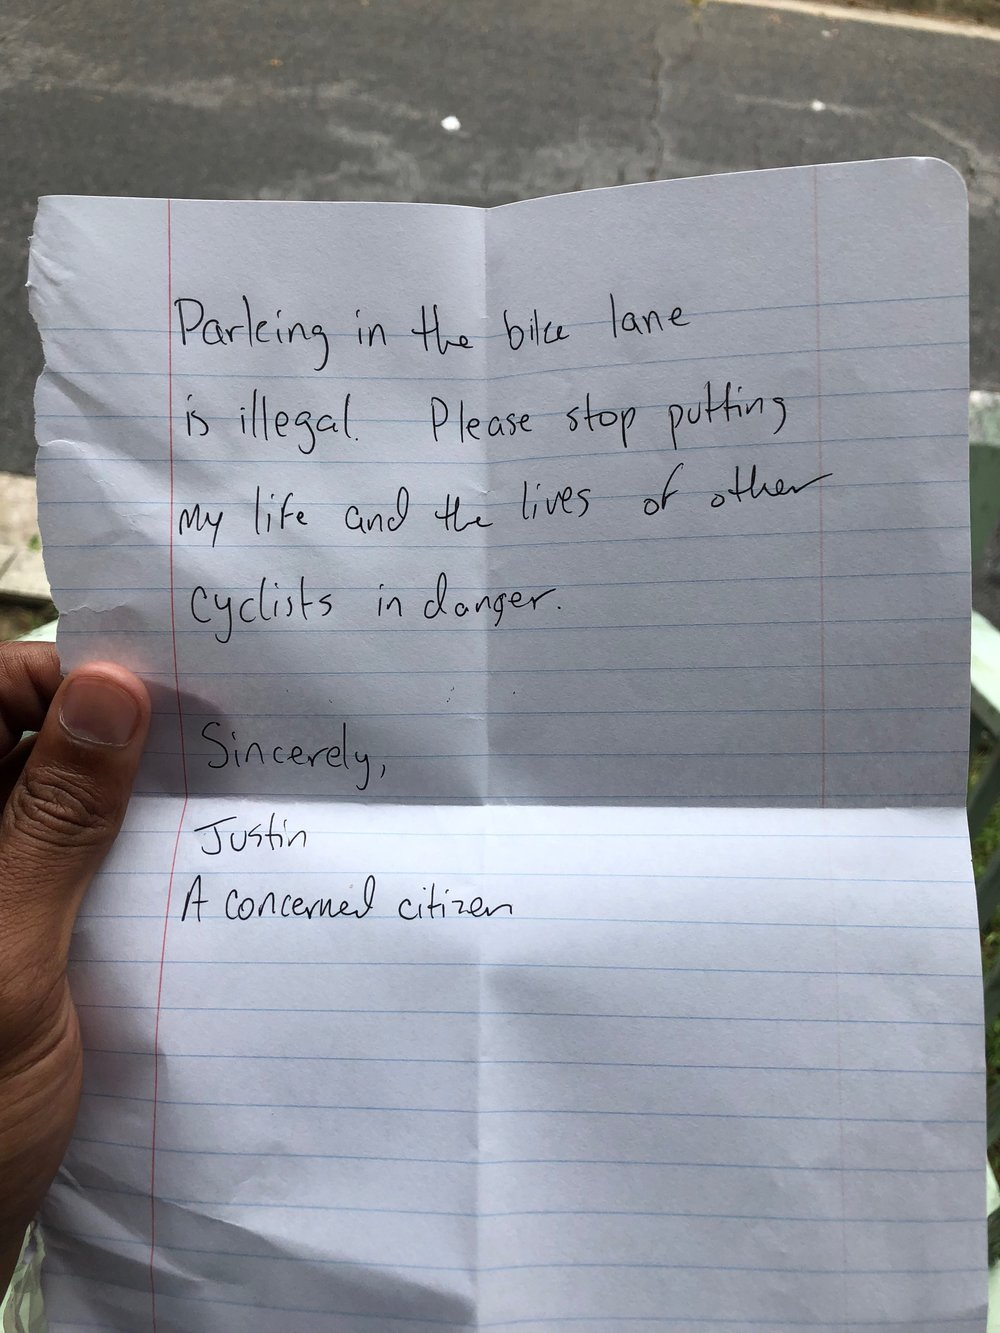 Note to illegal parked car